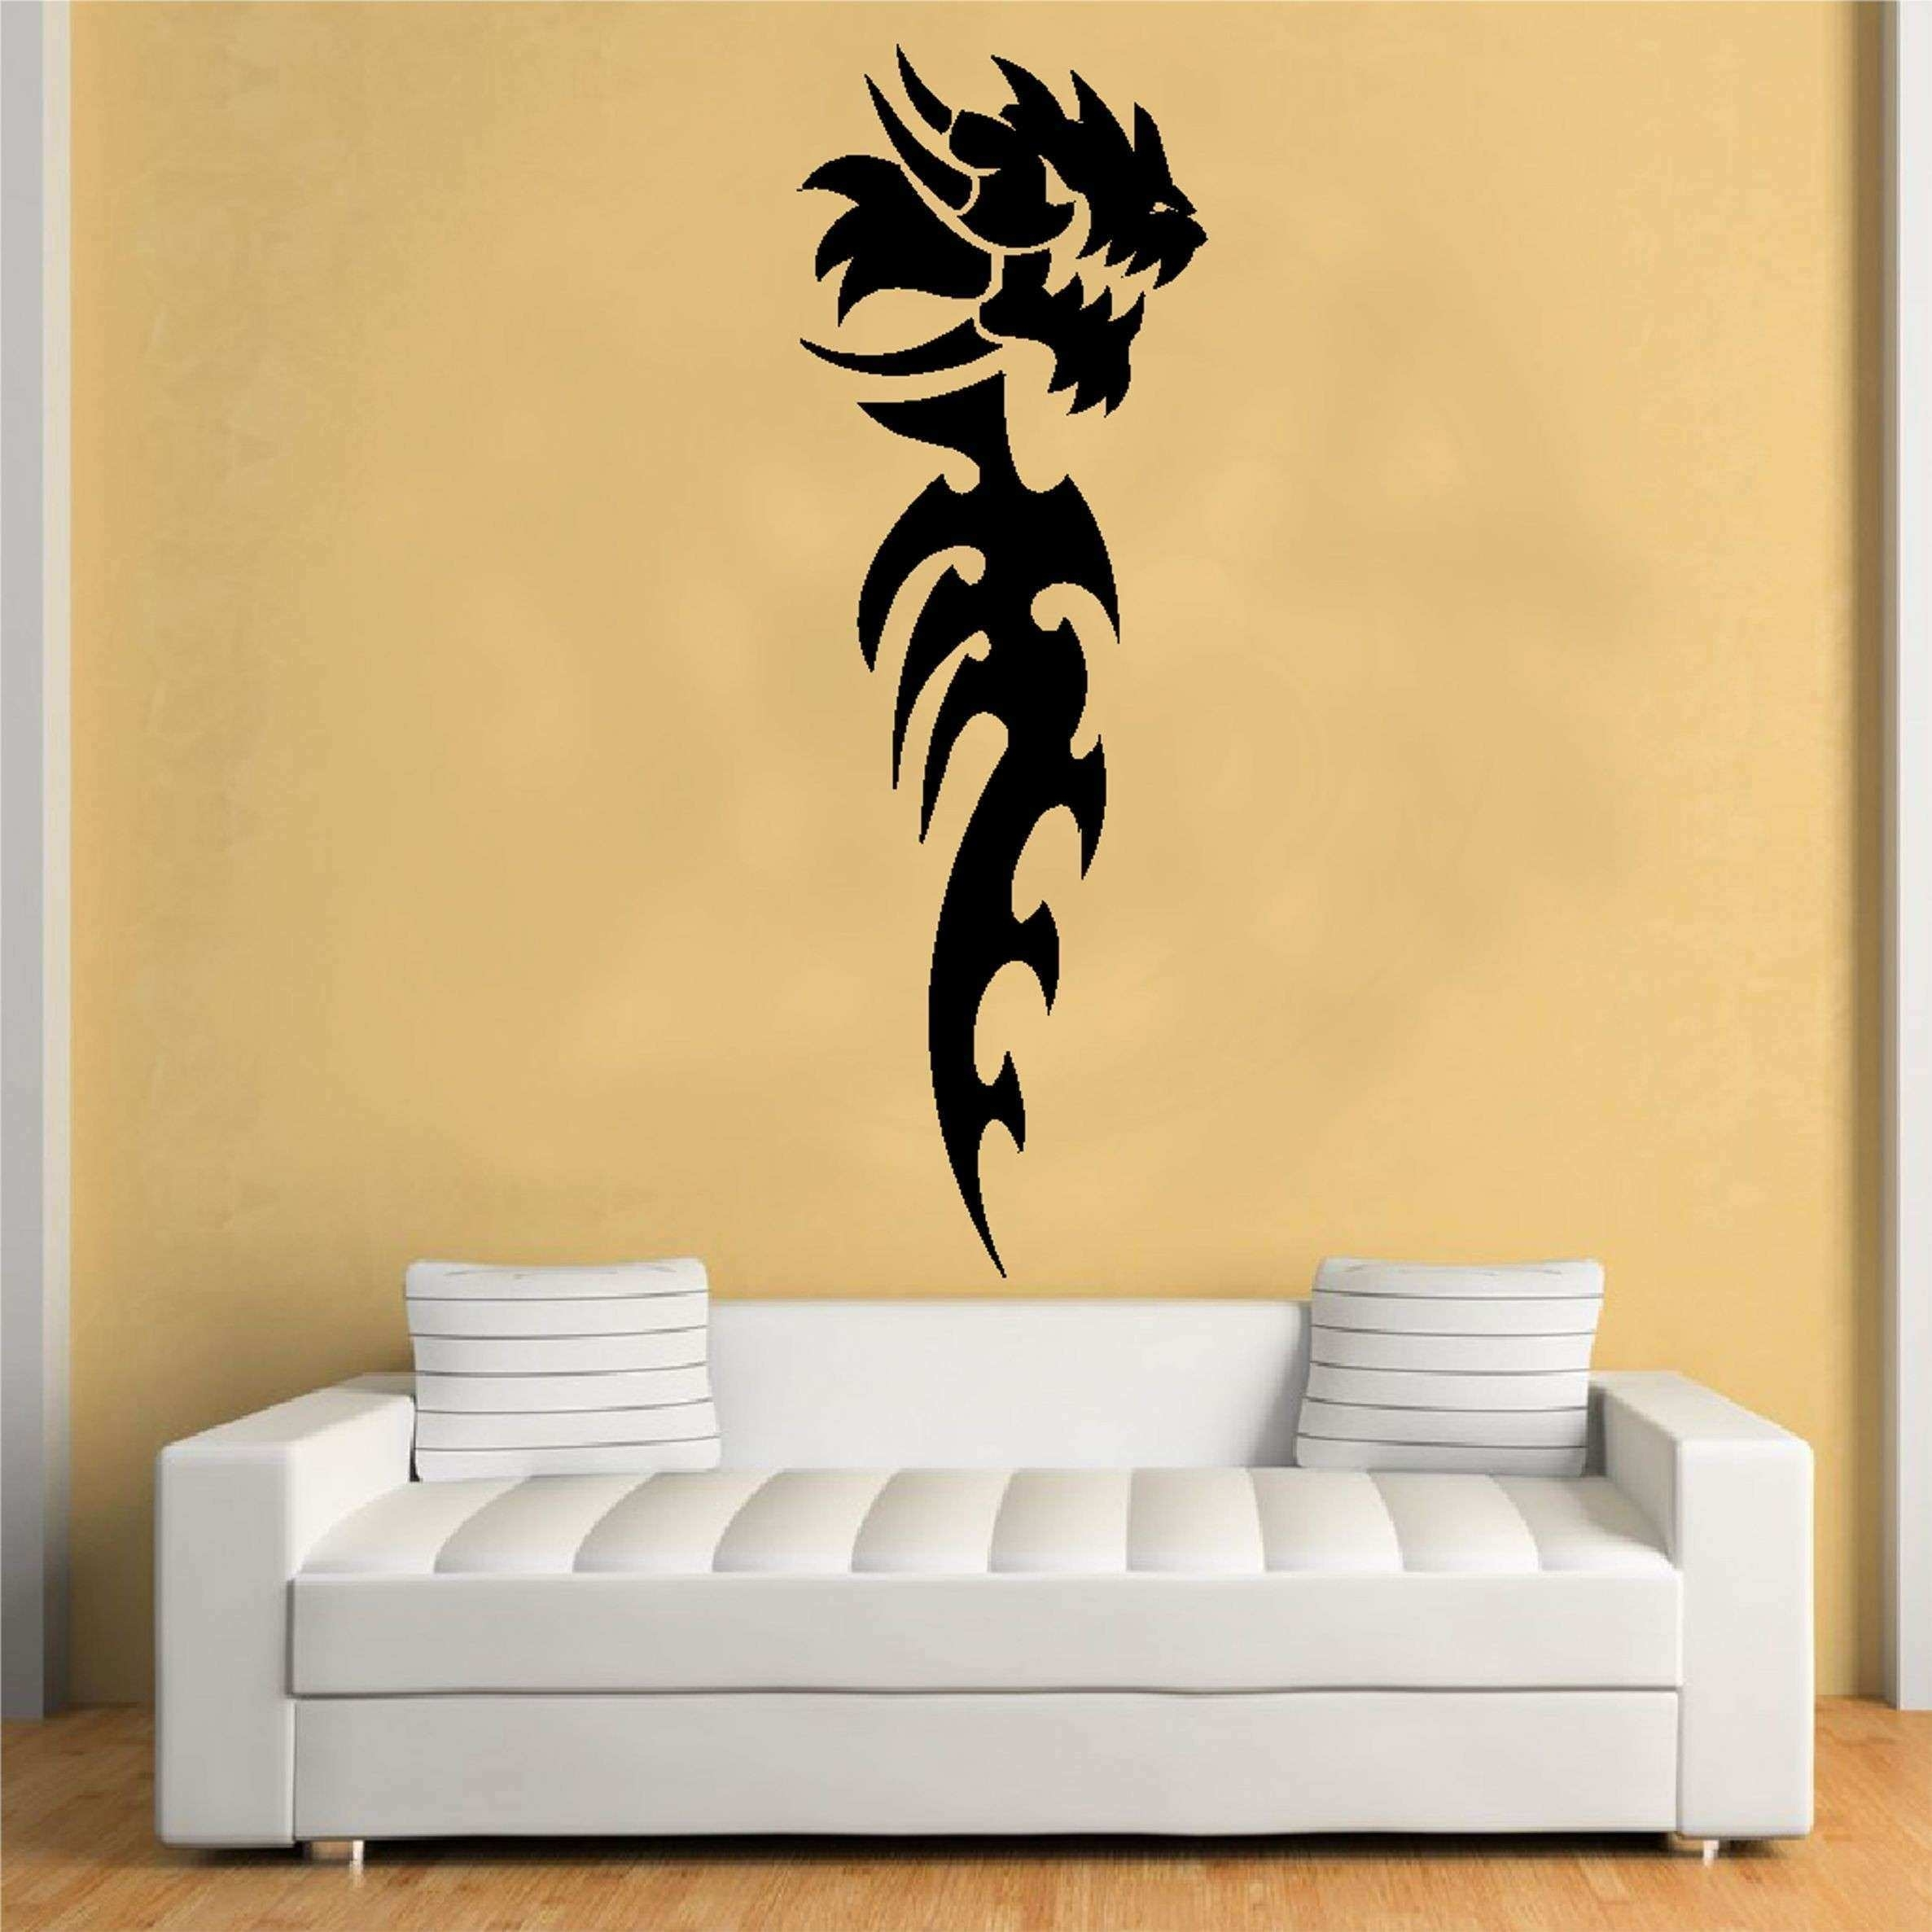 Paw Print Stencil Wall Painting Luxury Unusual Animal Wall Decor Intended For Stencil Wall Art (View 16 of 20)